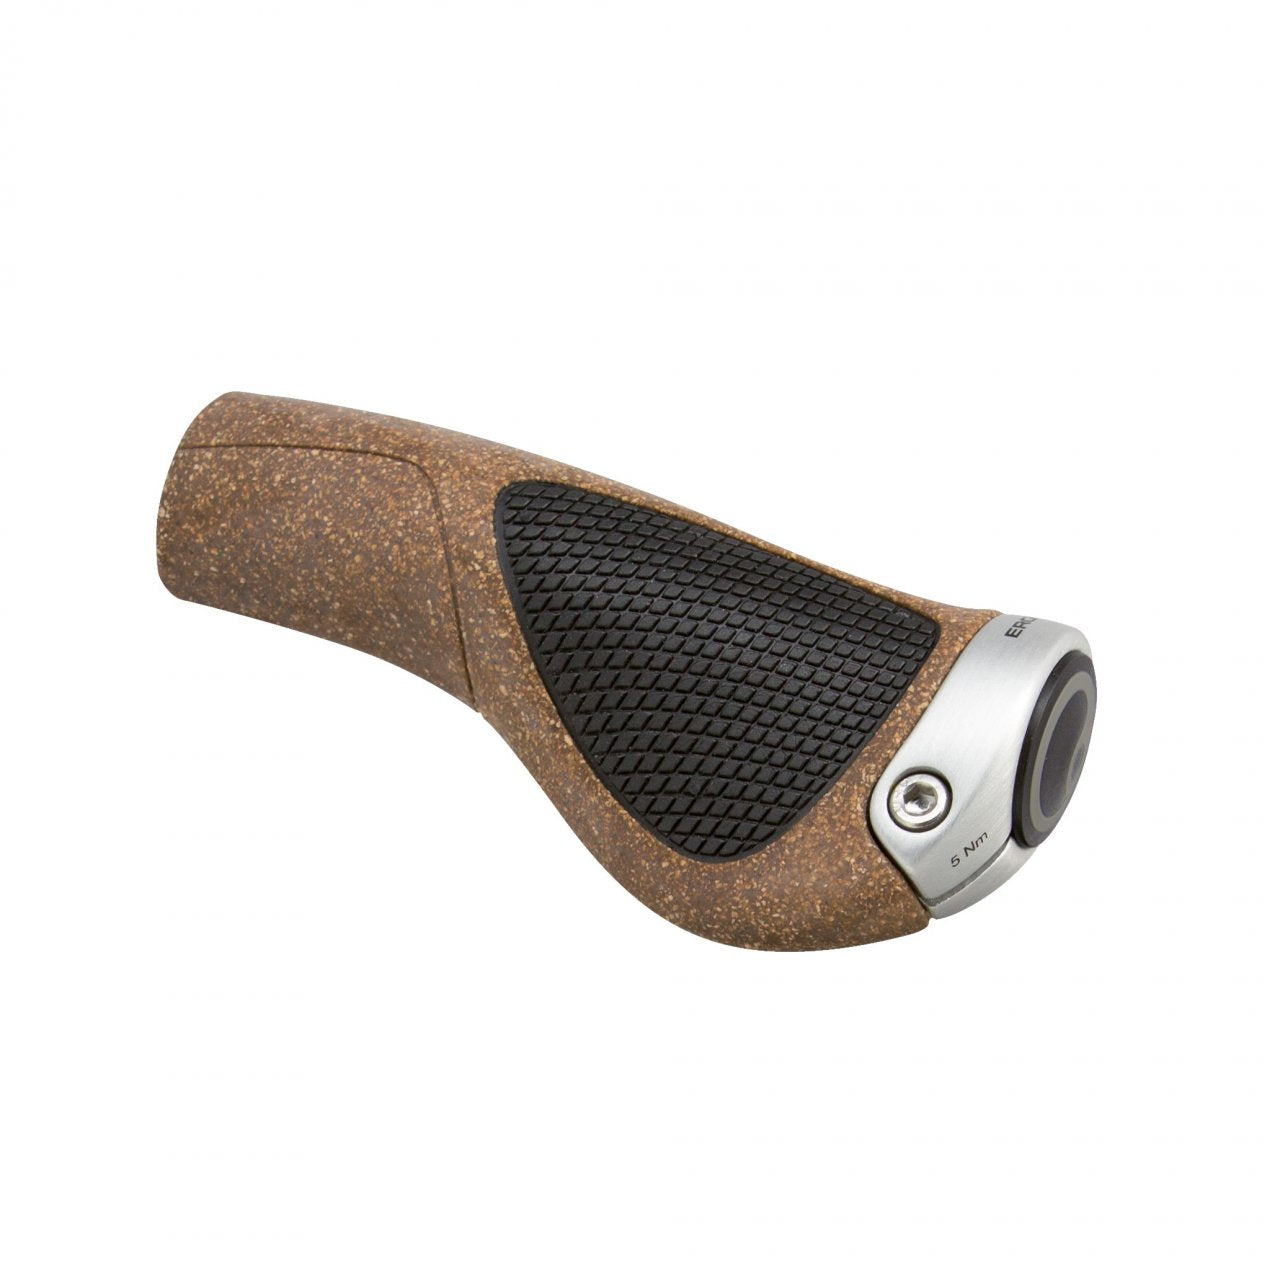 Ergon GP1-S Small Bio Cork Grips - Cycles Galleria Melbourne